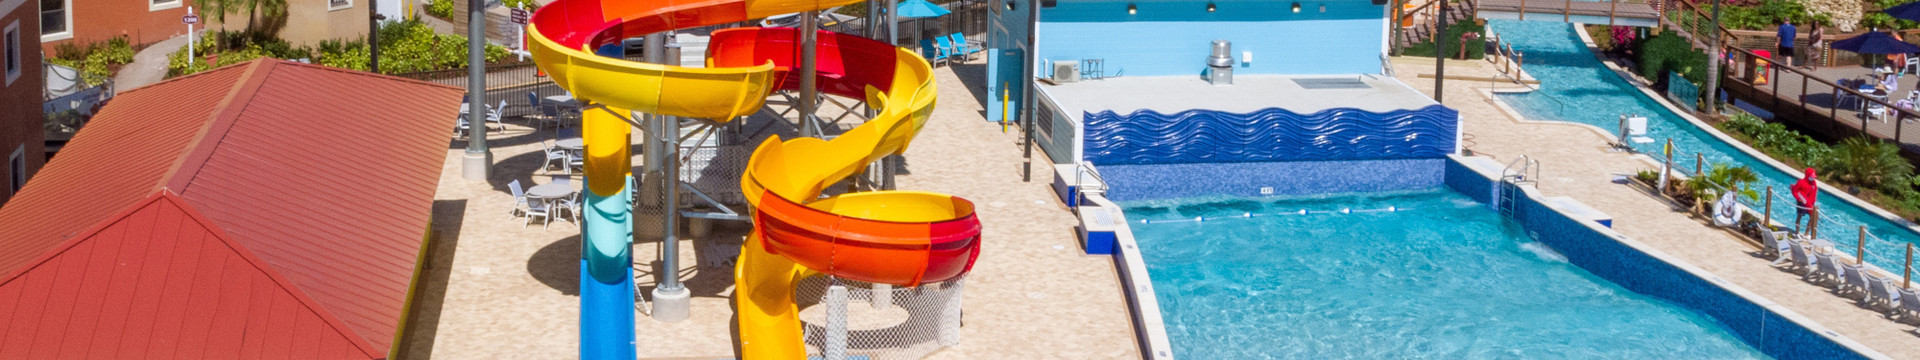 Treasure Cove Water Park | Lakes Resort & Spa Orlando, FL